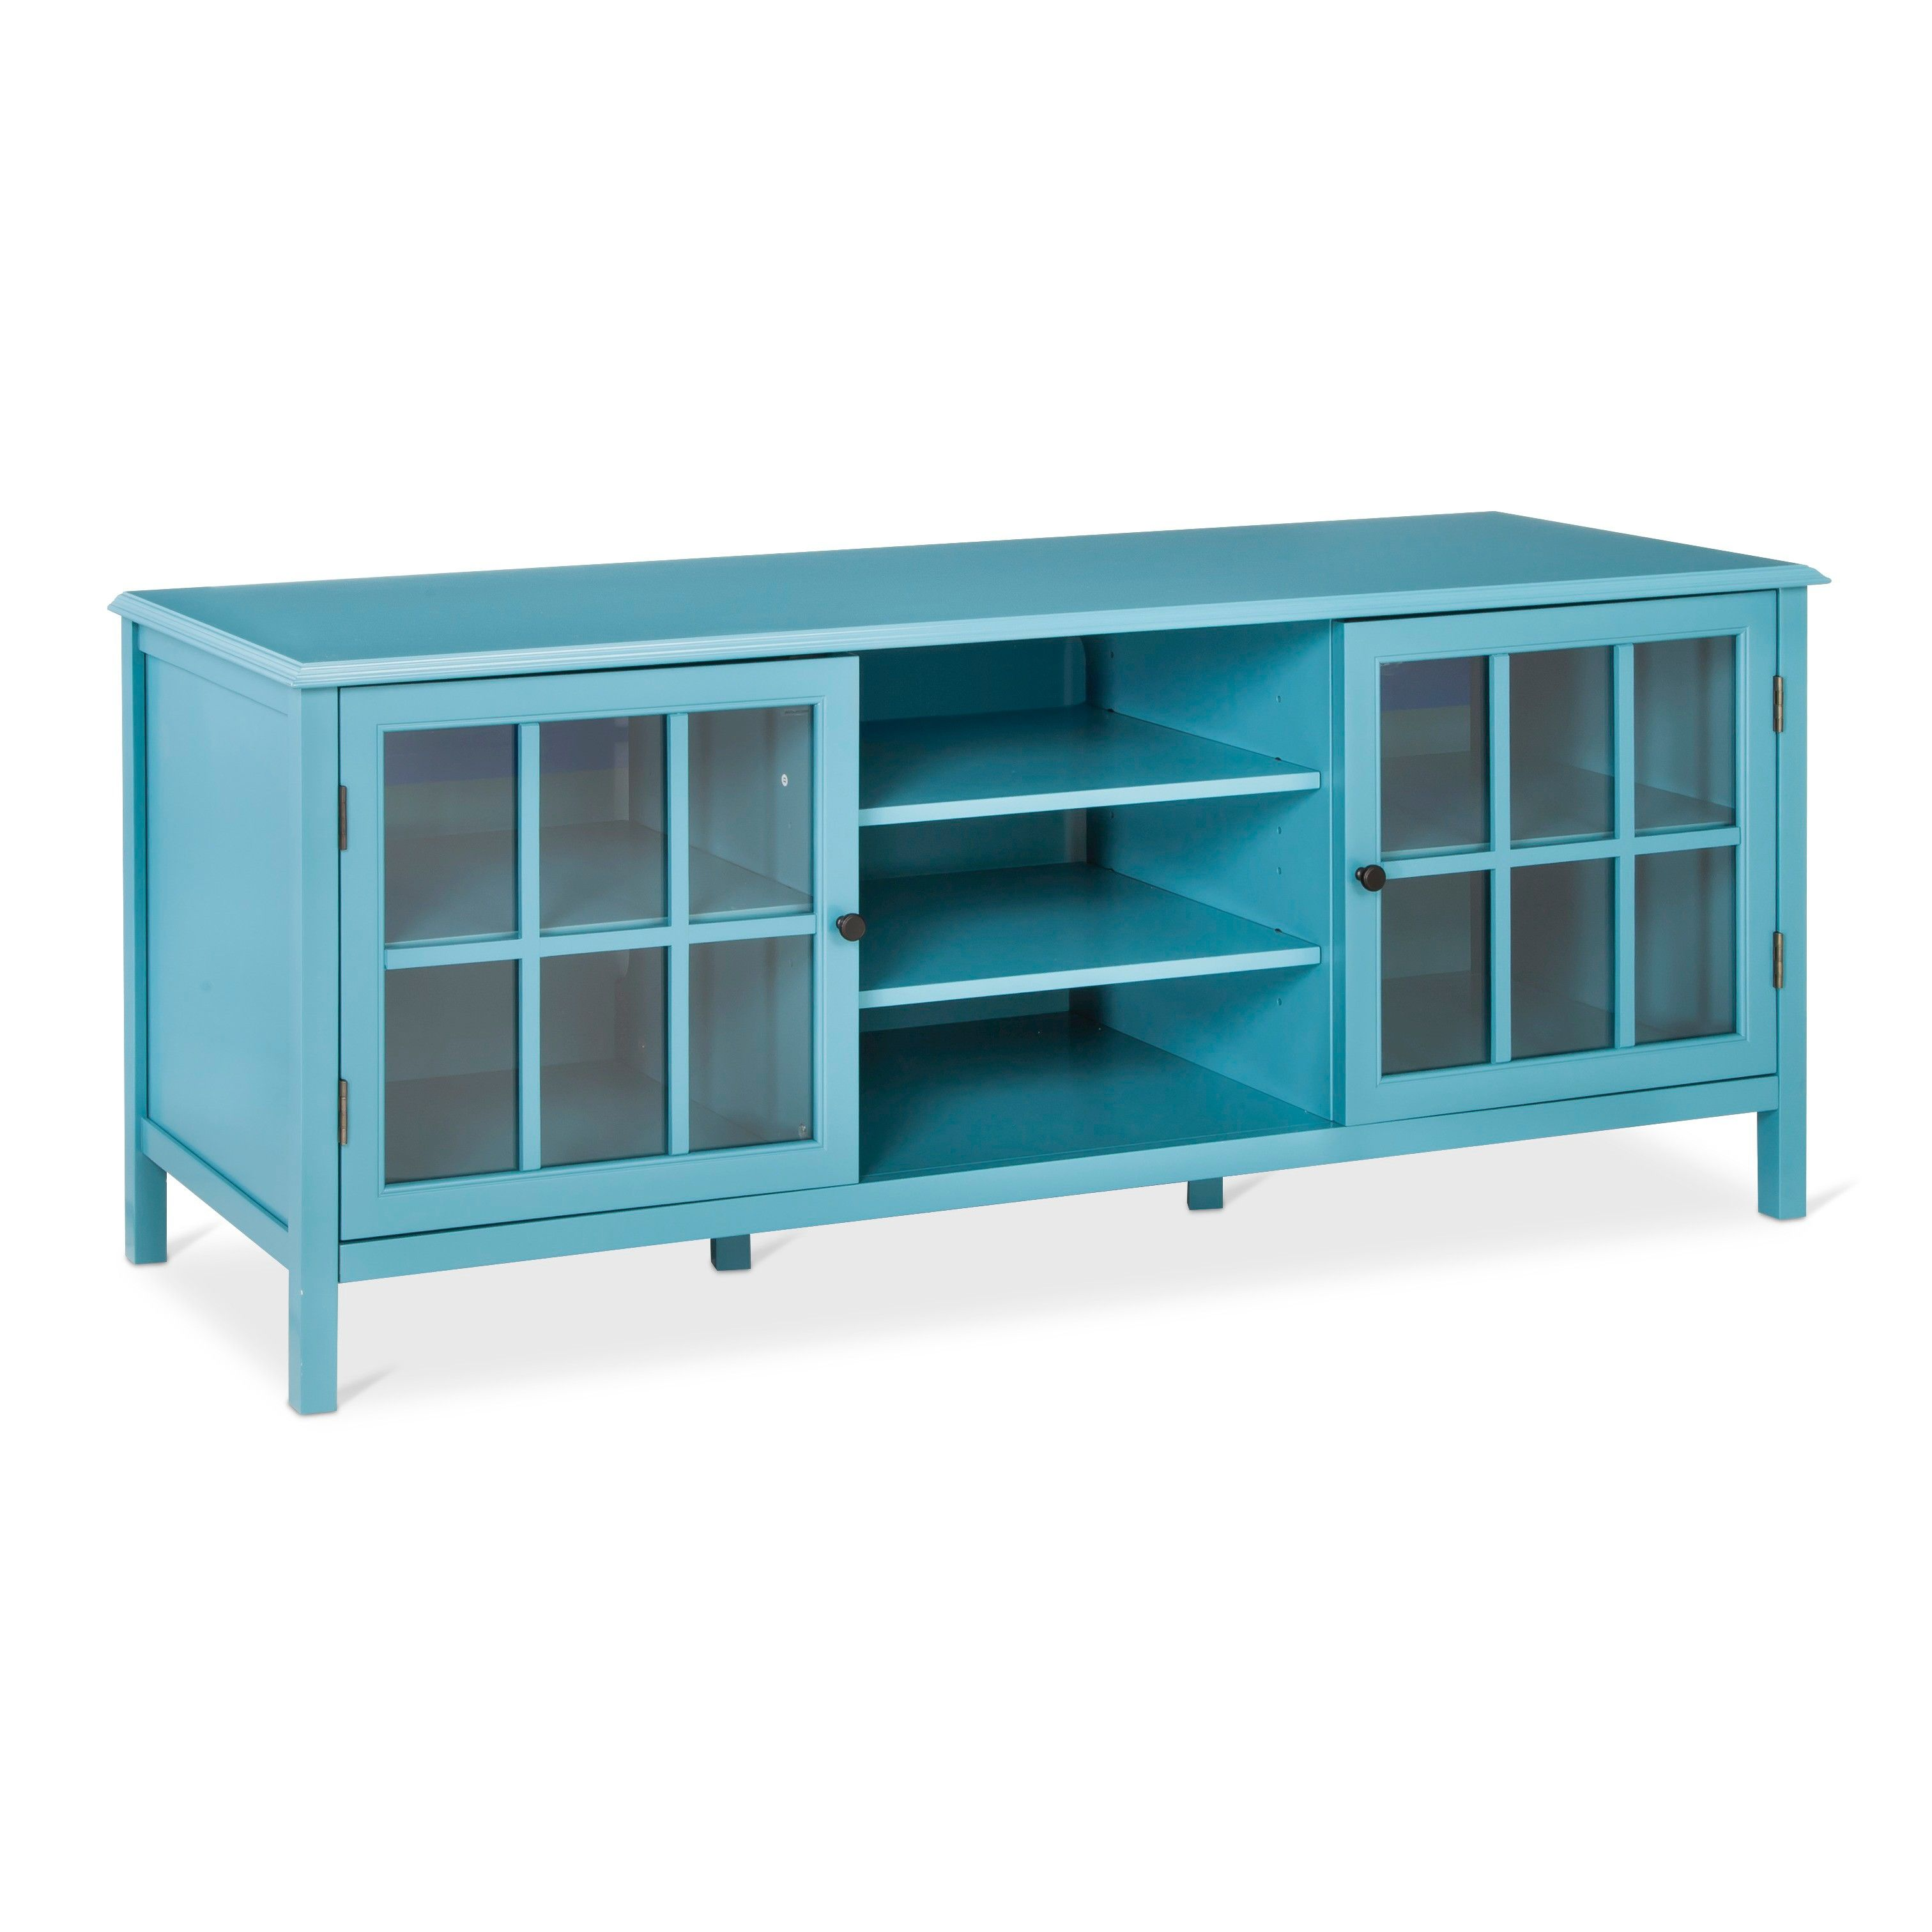 Windham Large TV Stand 60 - Threshold, Blue | Pinterest | Double ...